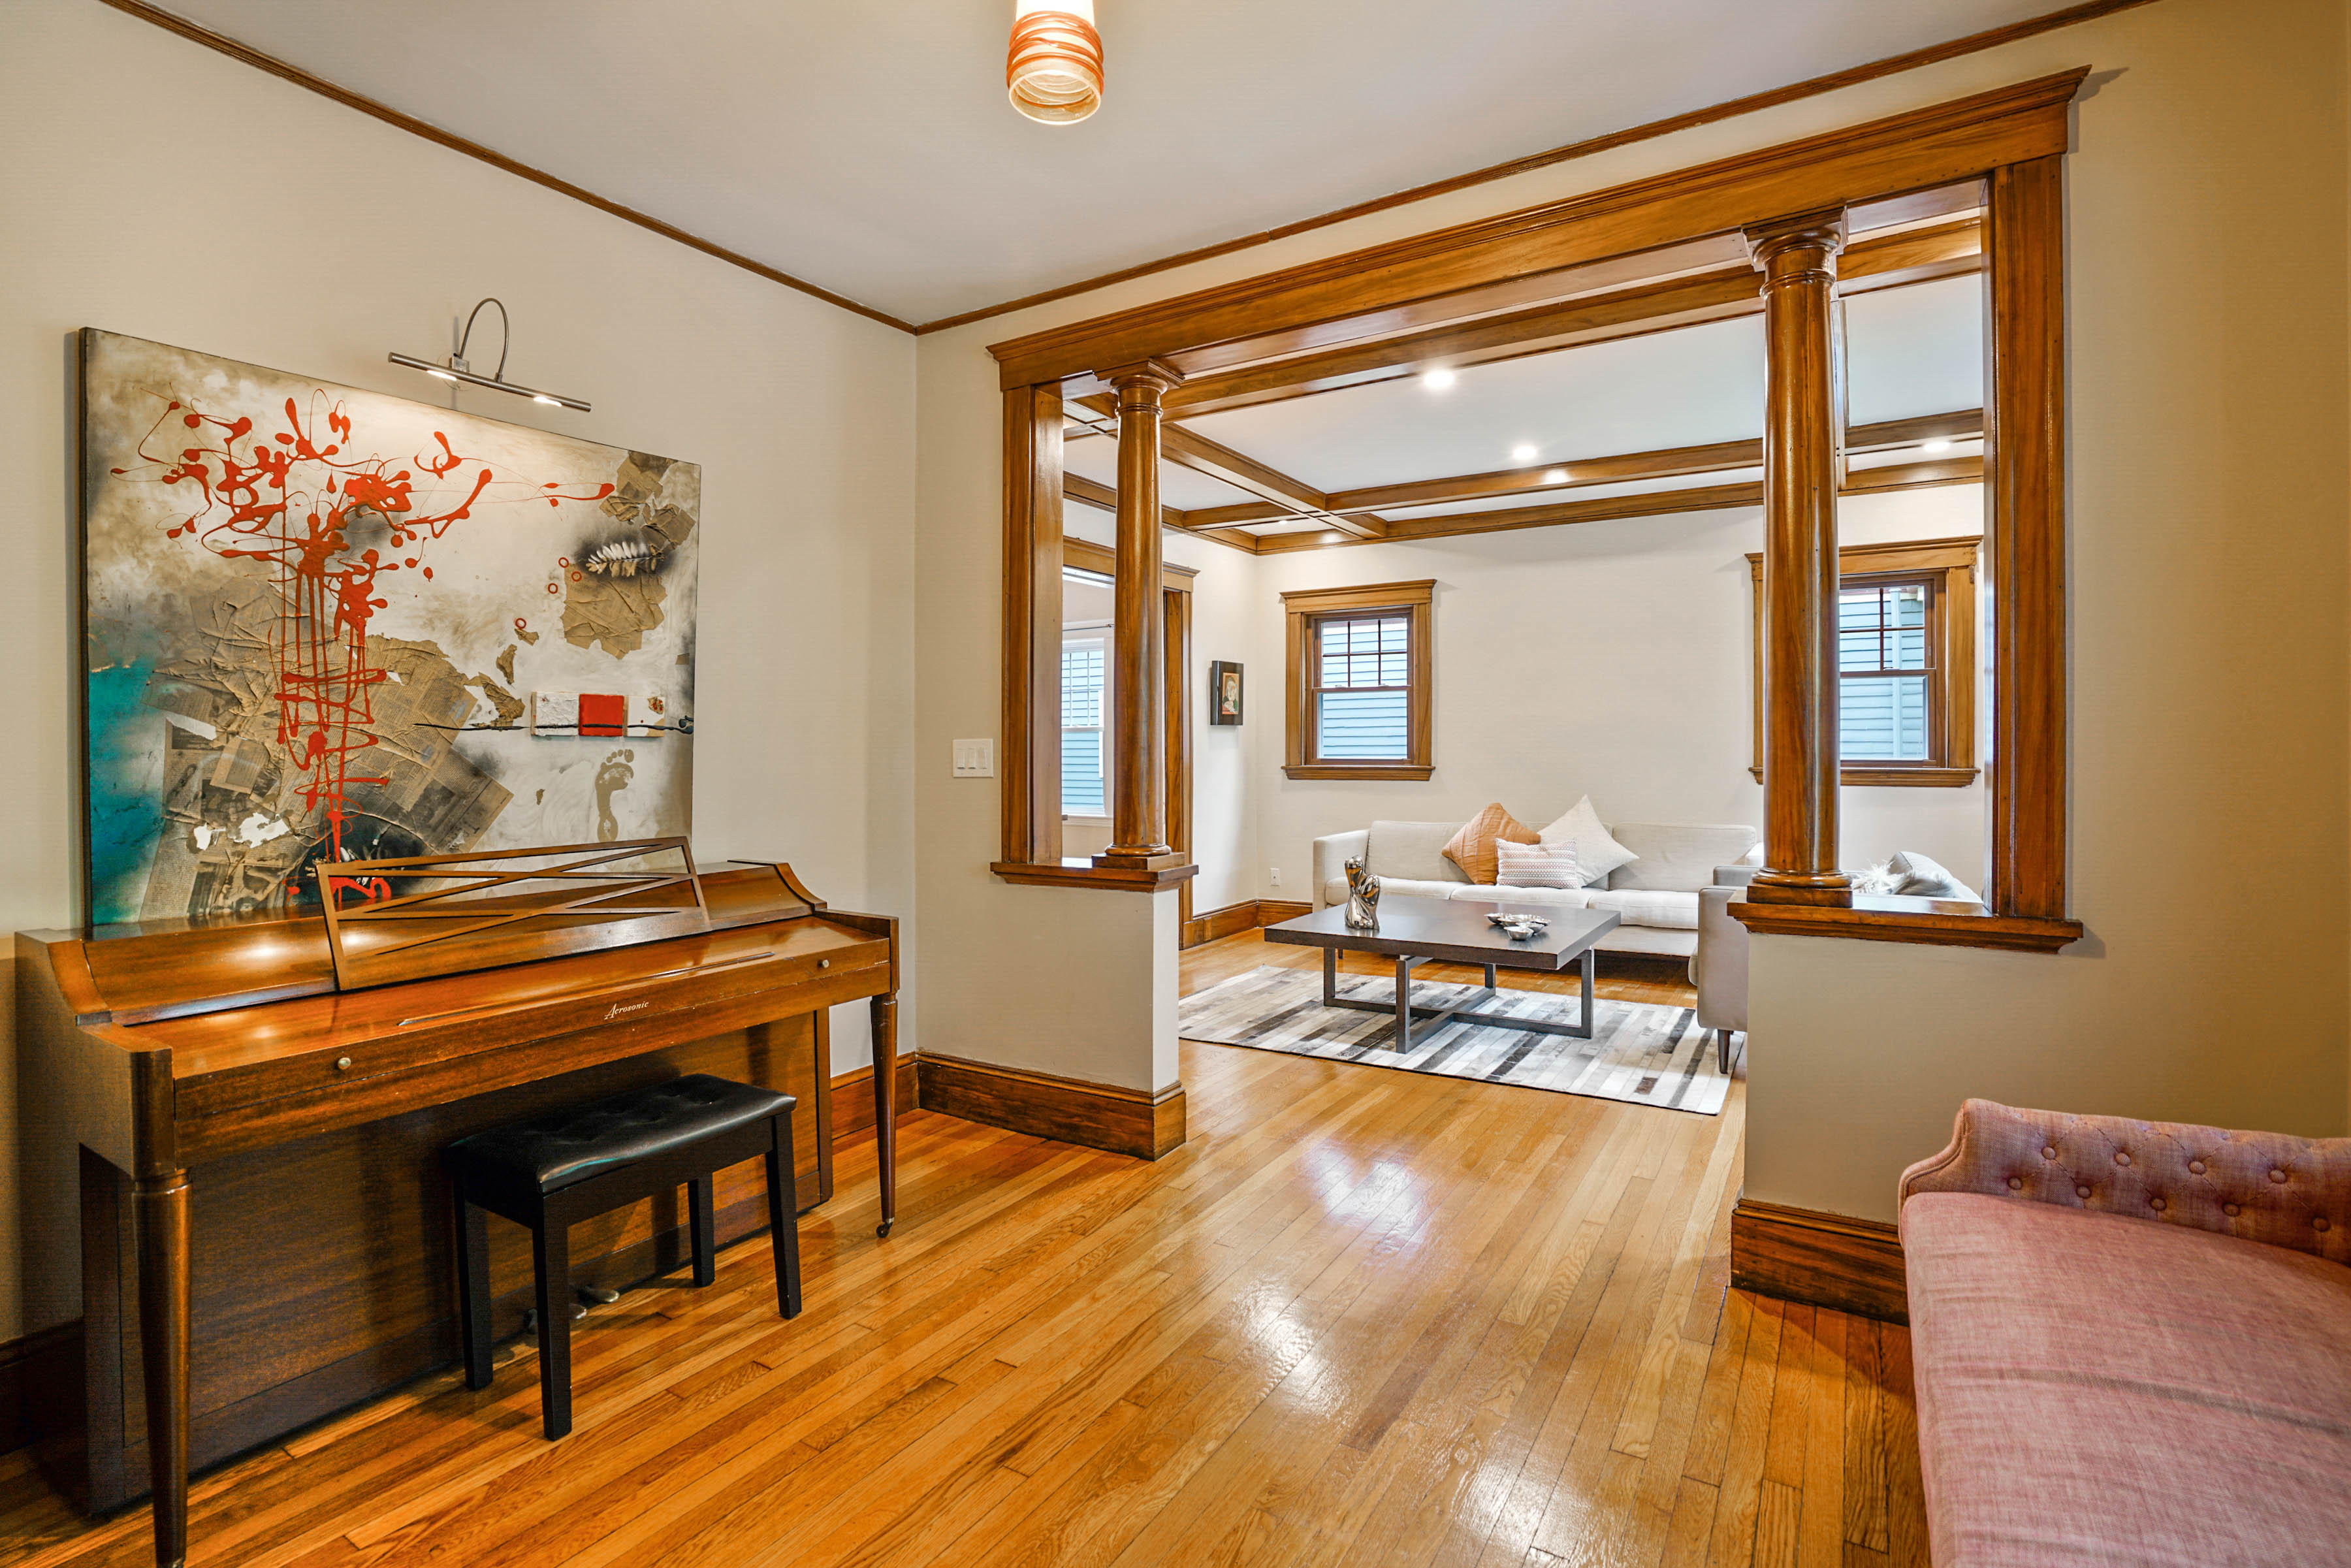 Virtual Tour: Step Inside this Exquisite Two-Bedroom Condo For Sale in Brookline's Coolidge Corner - $1.2M